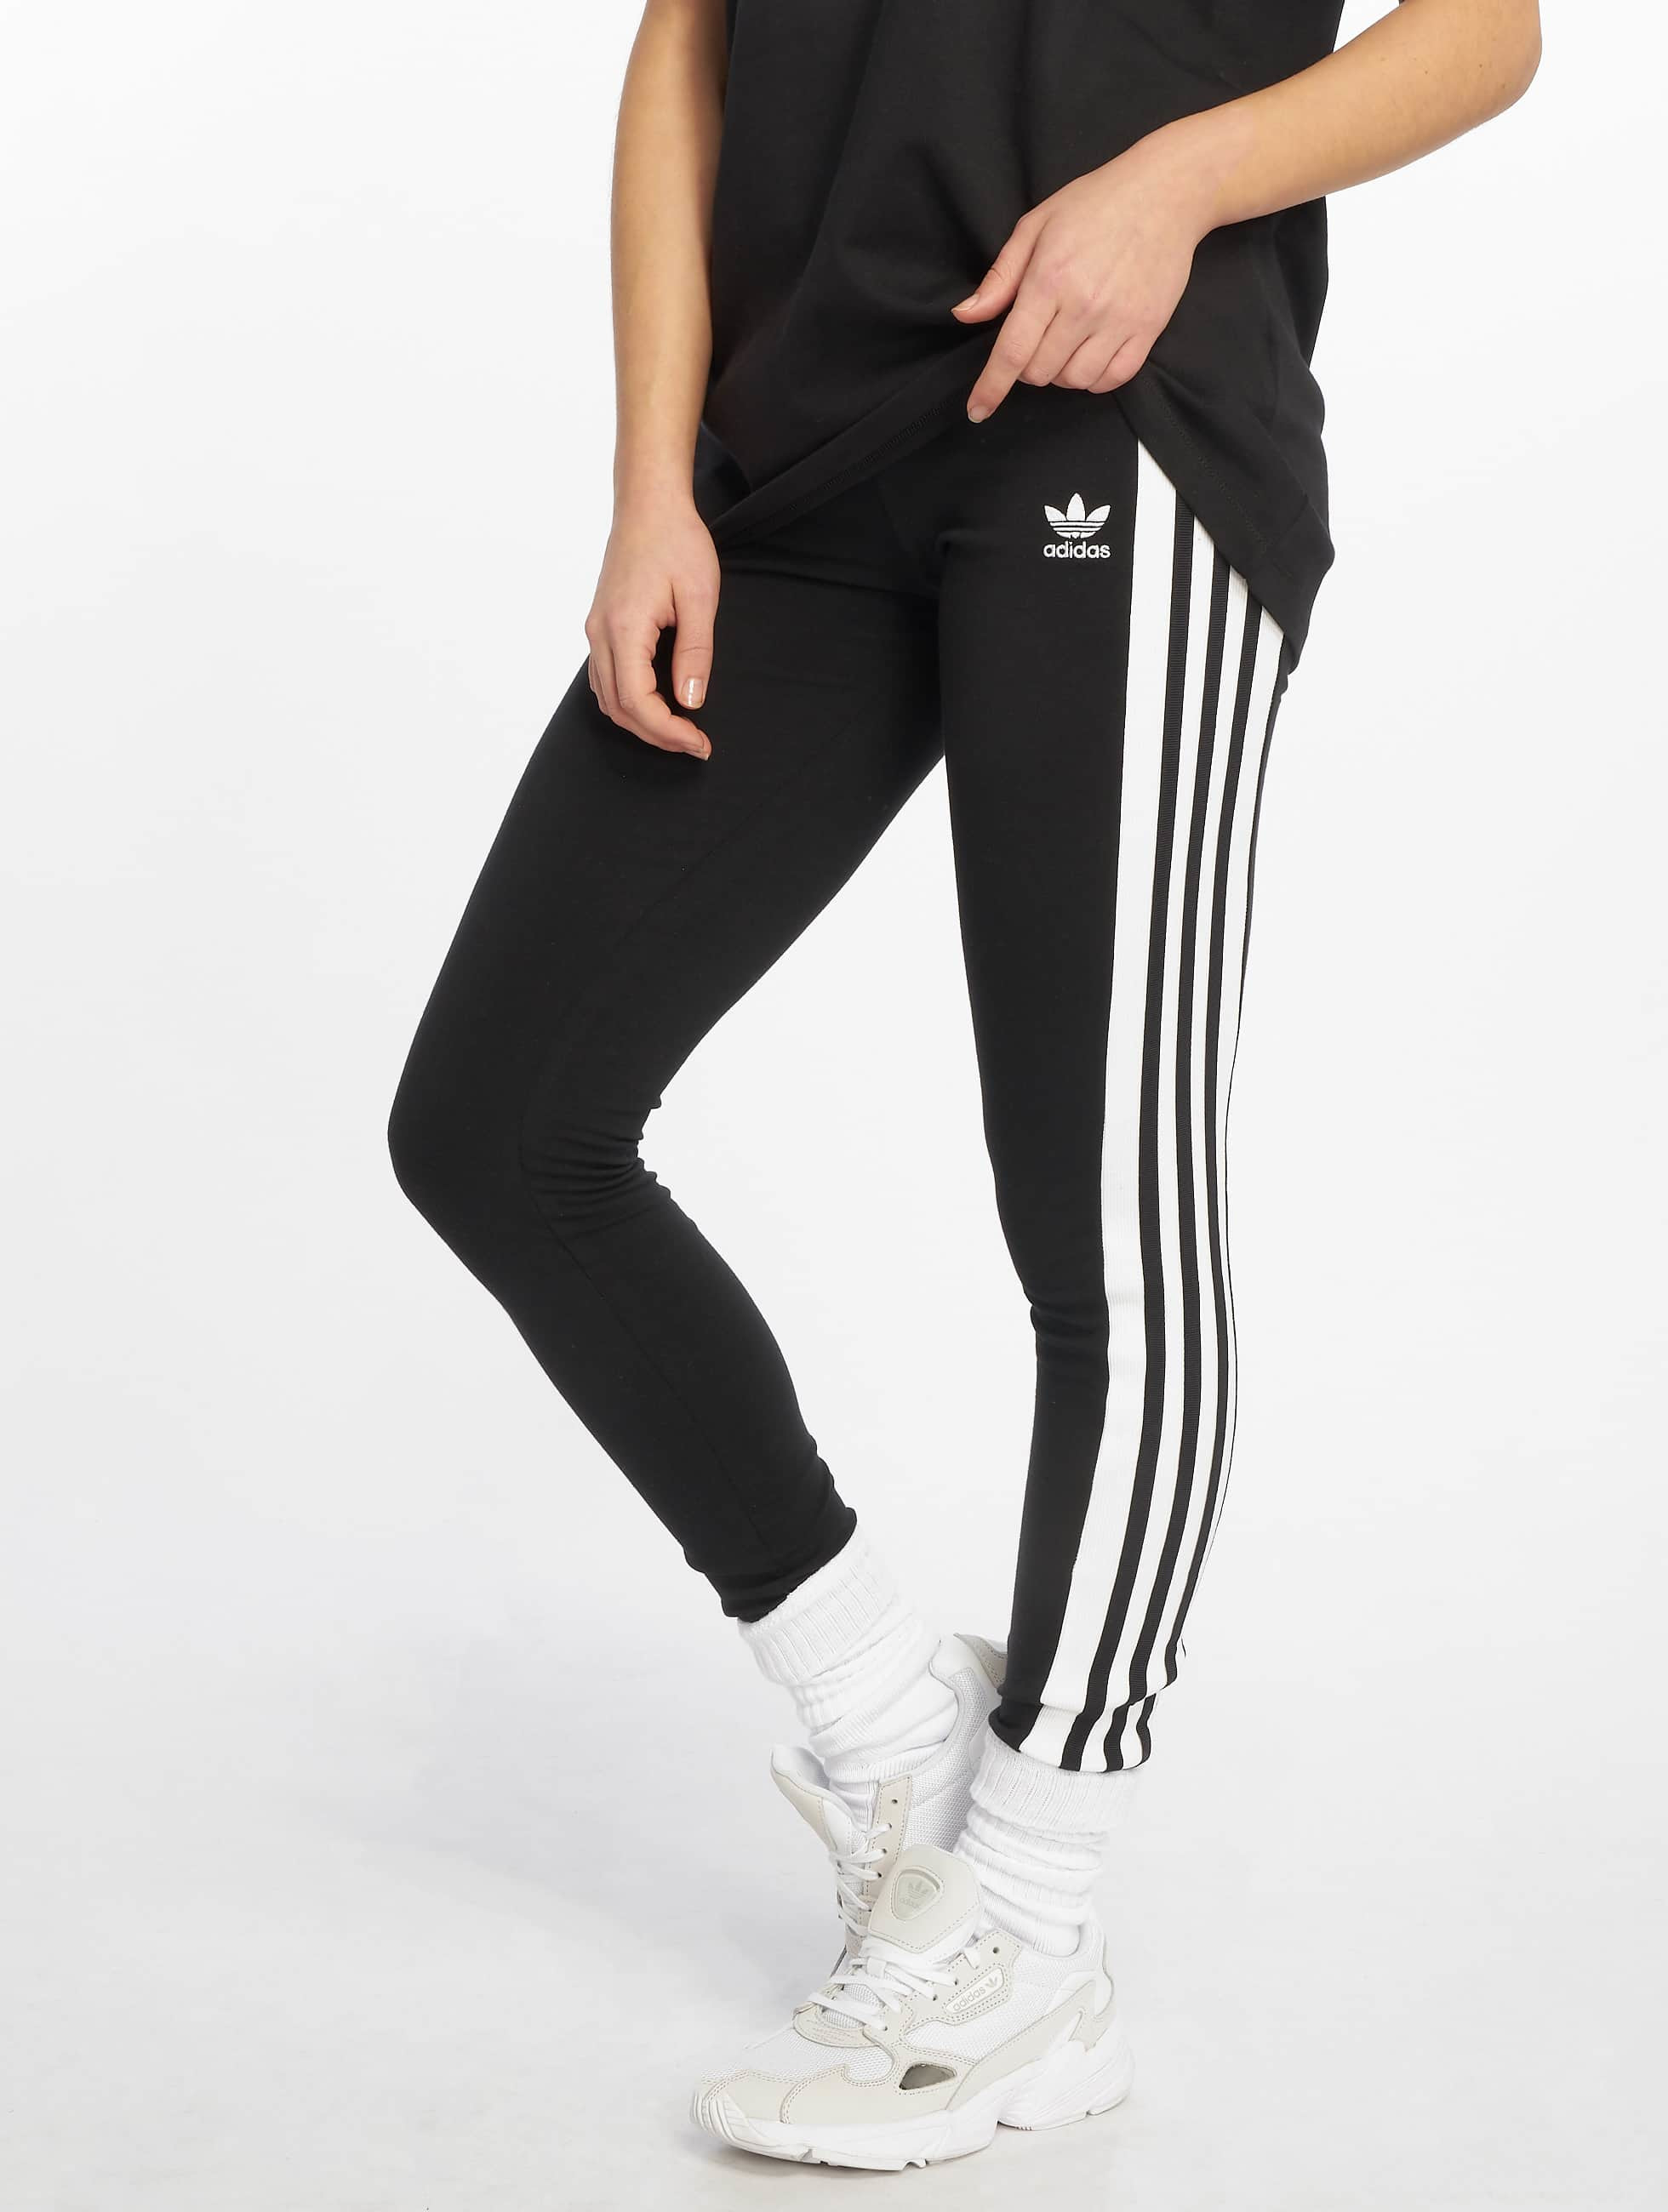 94ab8dbdf7c adidas originals broek / Legging Classic in zwart 599028